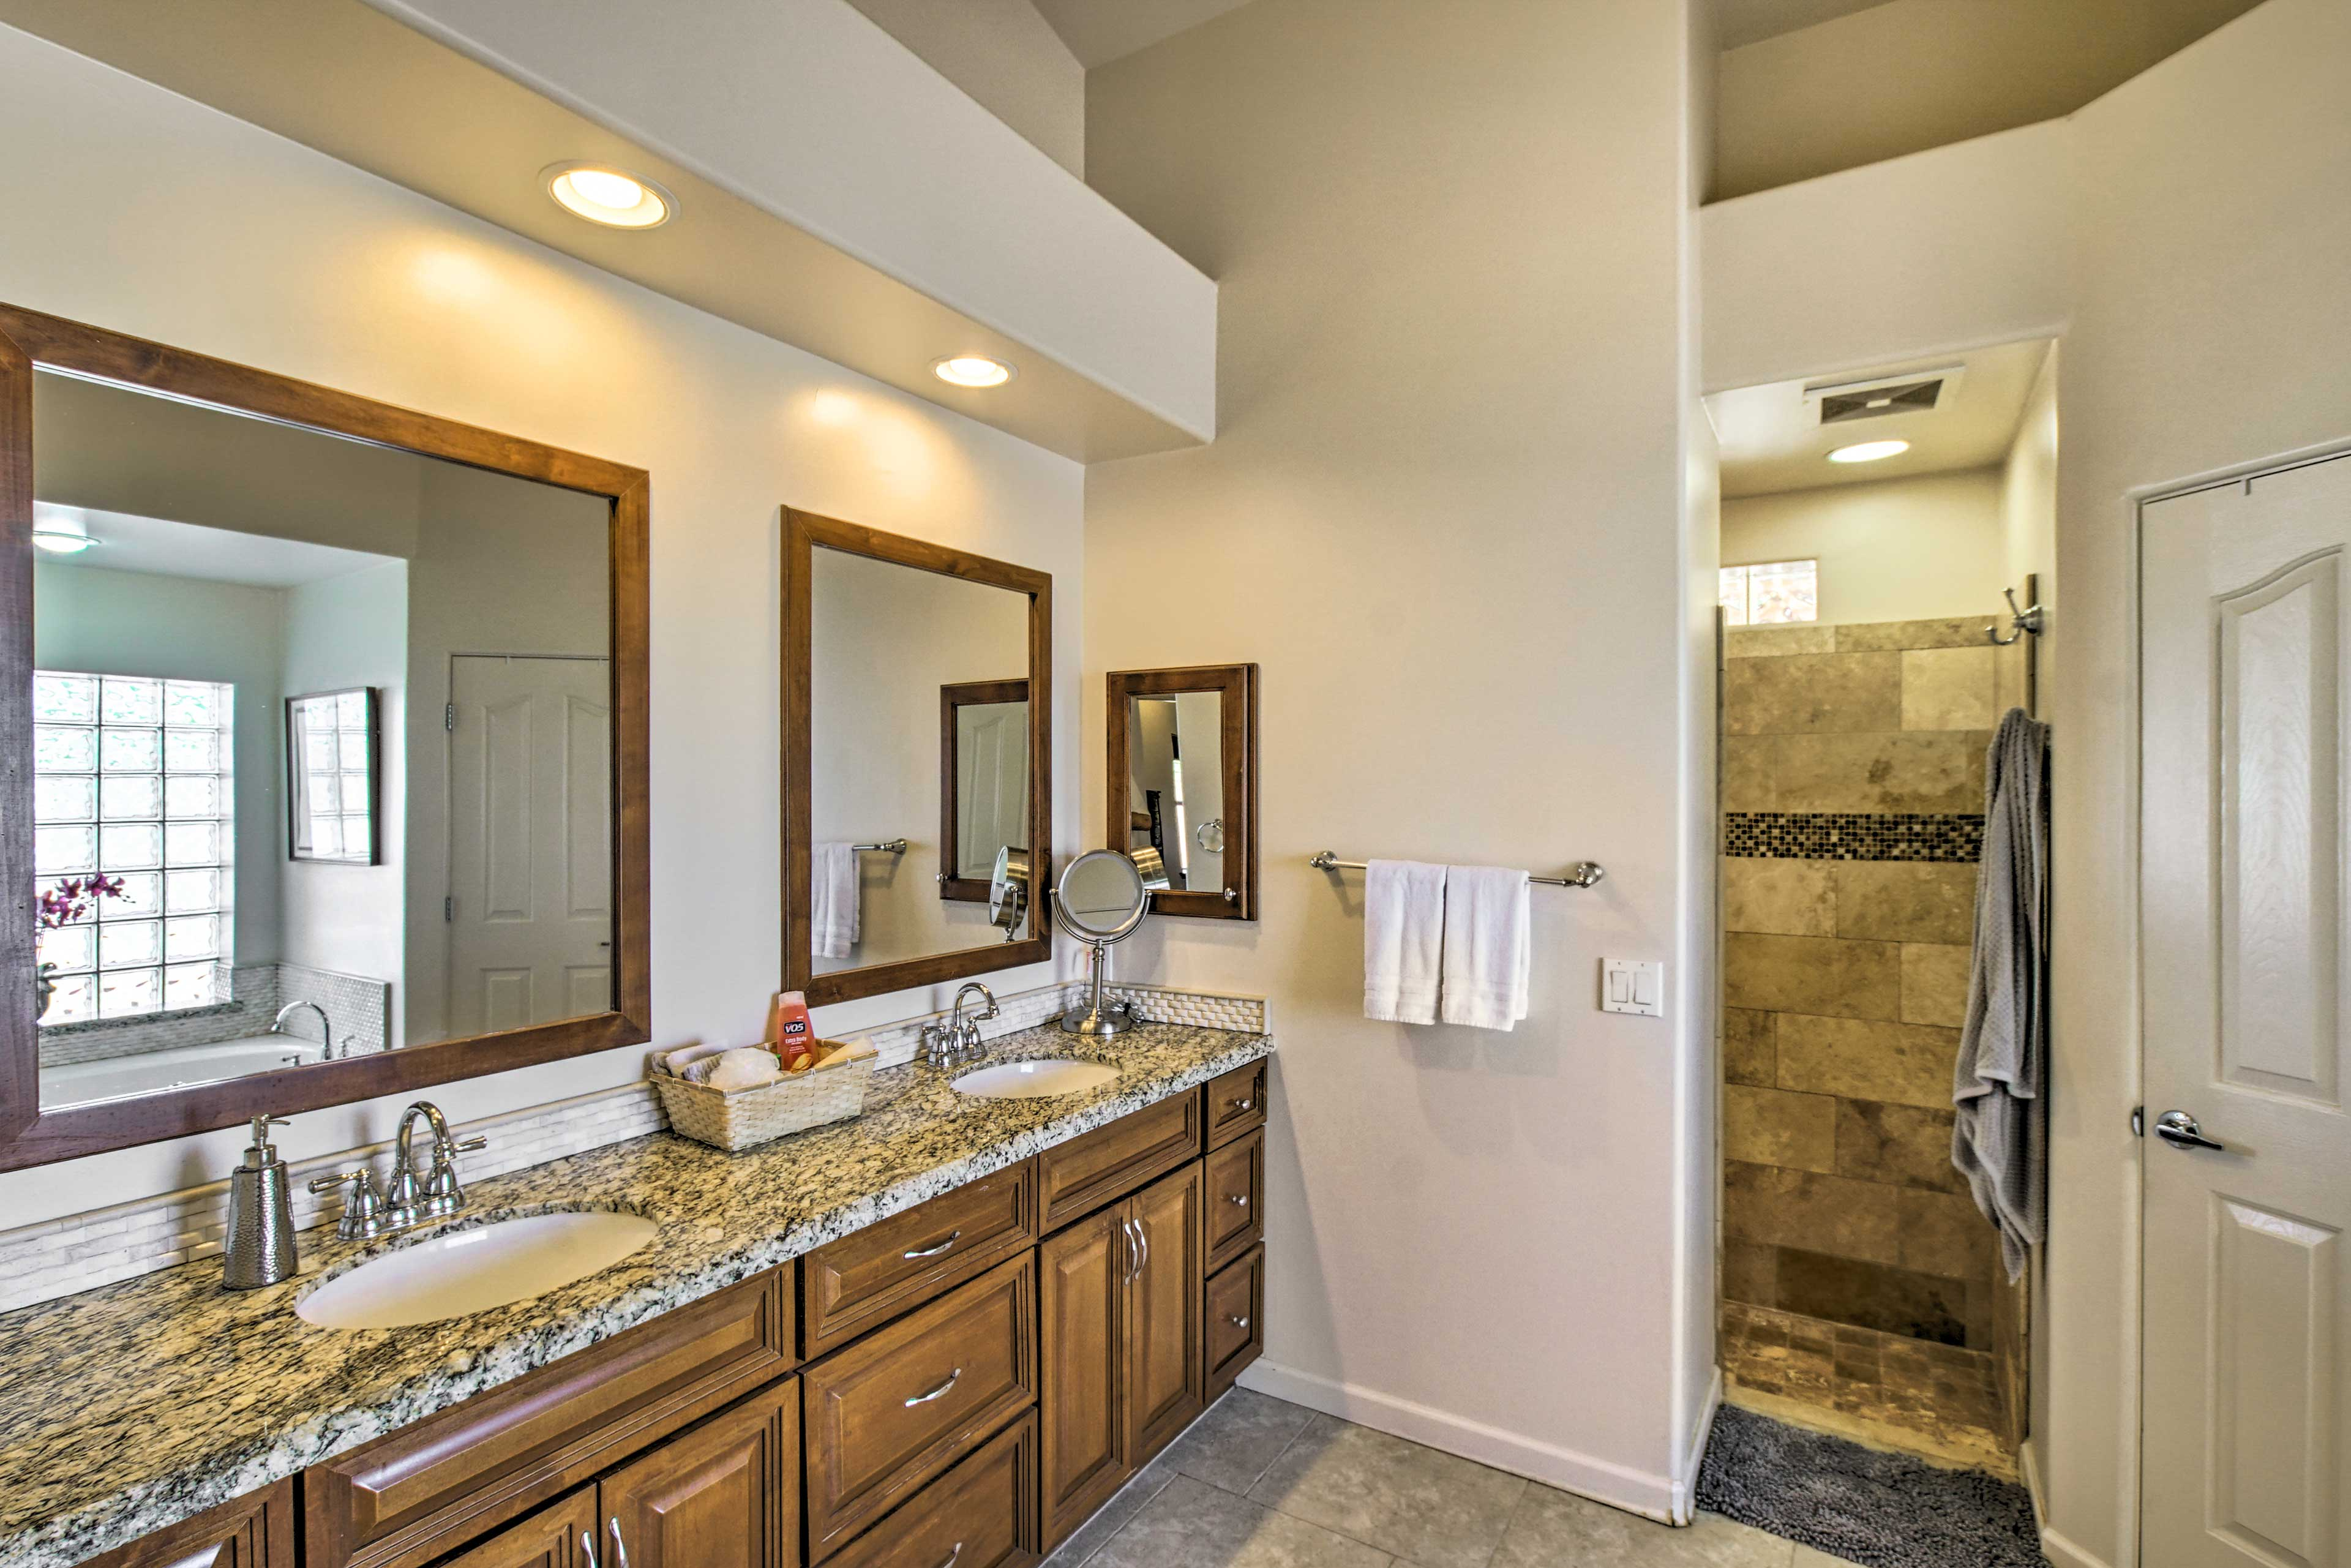 The master bathroom offers dual sinks and a walk-in shower.